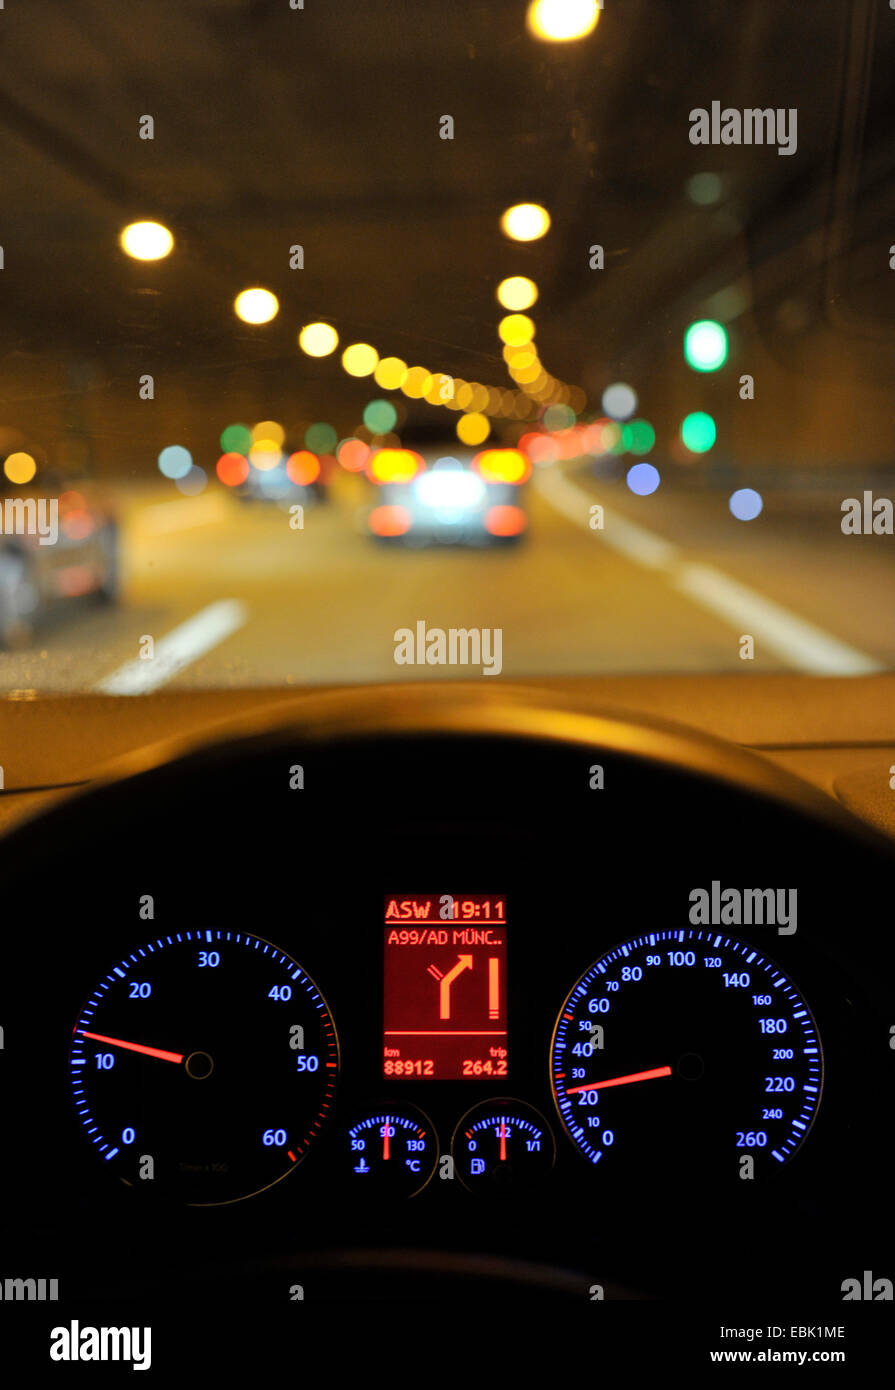 view over the dashboard of a passenger car on a motorway through the rain-wet windshield with poor visibility, Germany - Stock Image